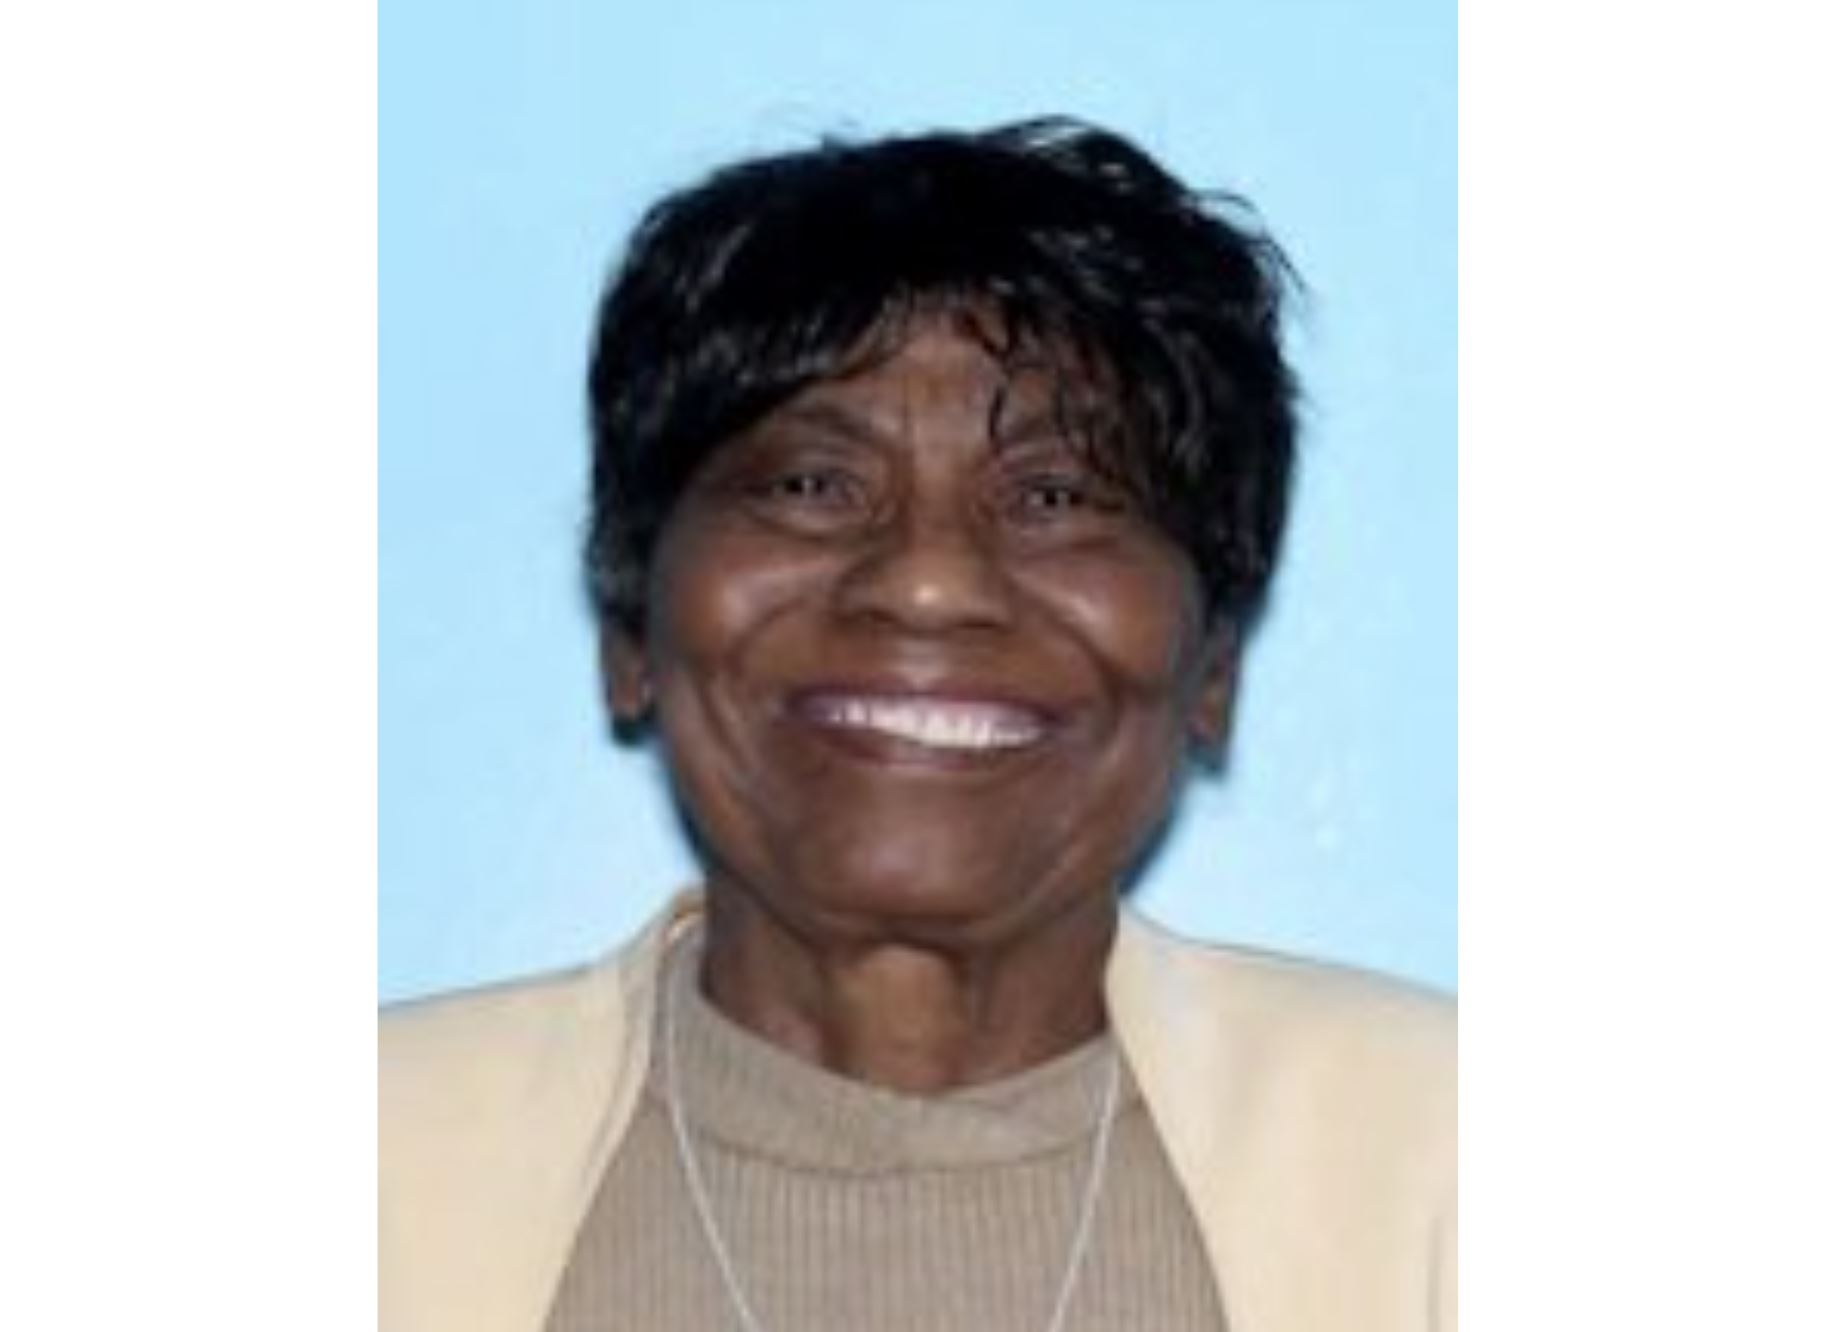 UPDATE: Missing Person Alert canceled after Birmingham woman located